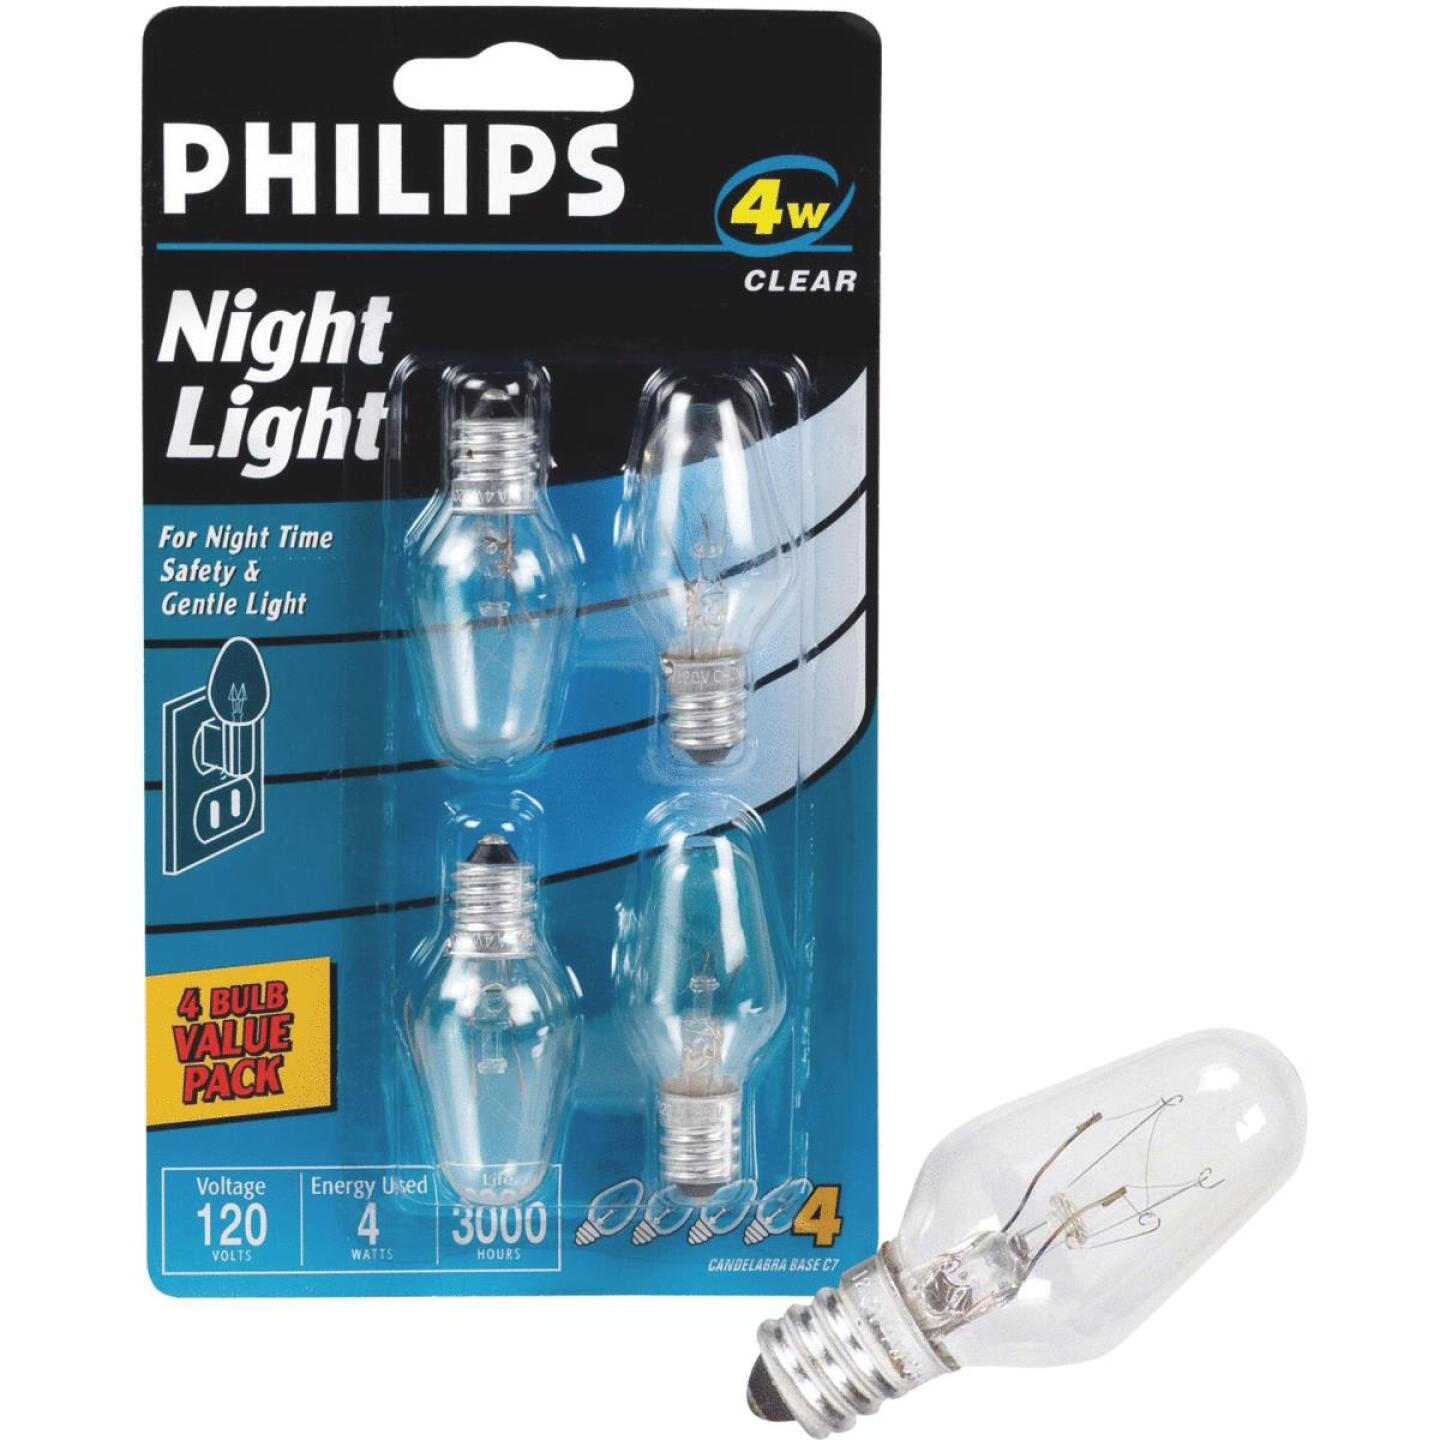 Philips 4W Clear Candelabra C7 Incandescent Night Light Bulb (4-Pack) Image 1